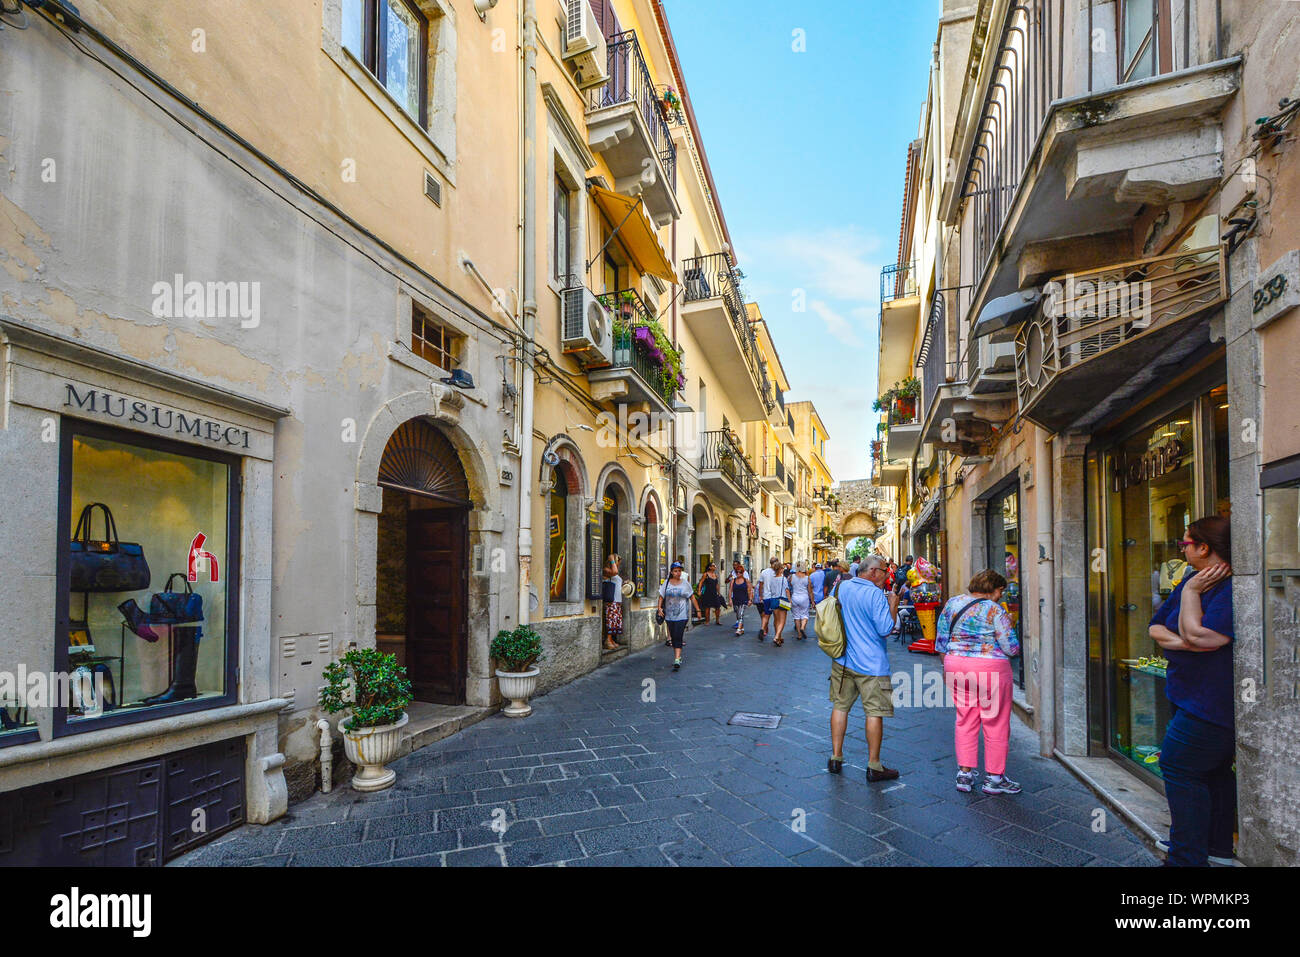 A couple window shops on the Corso Umberto street in the historic Taormina old town on the island of Sicily, Italy in the Mediterranean. Stock Photo